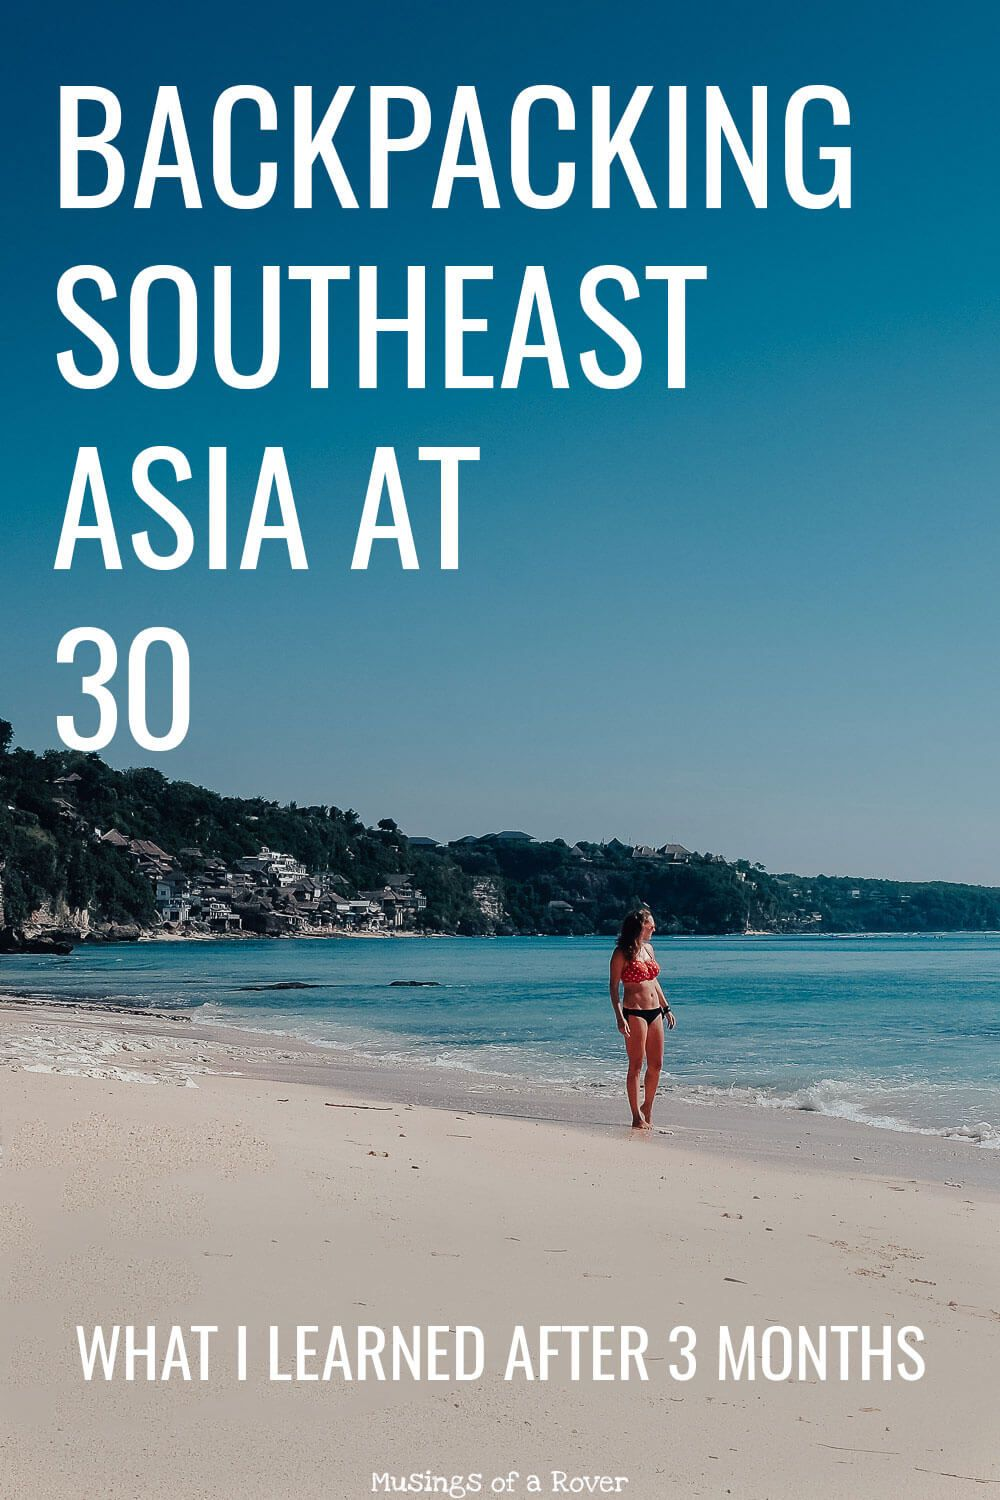 Do you want to backpack Southeast Asia? Heading to Thailand, Hong Kong, Malaysia, and Bali? Here are the lessons I learned from backpacking at 30 years old. Stop worrying if you're too old!